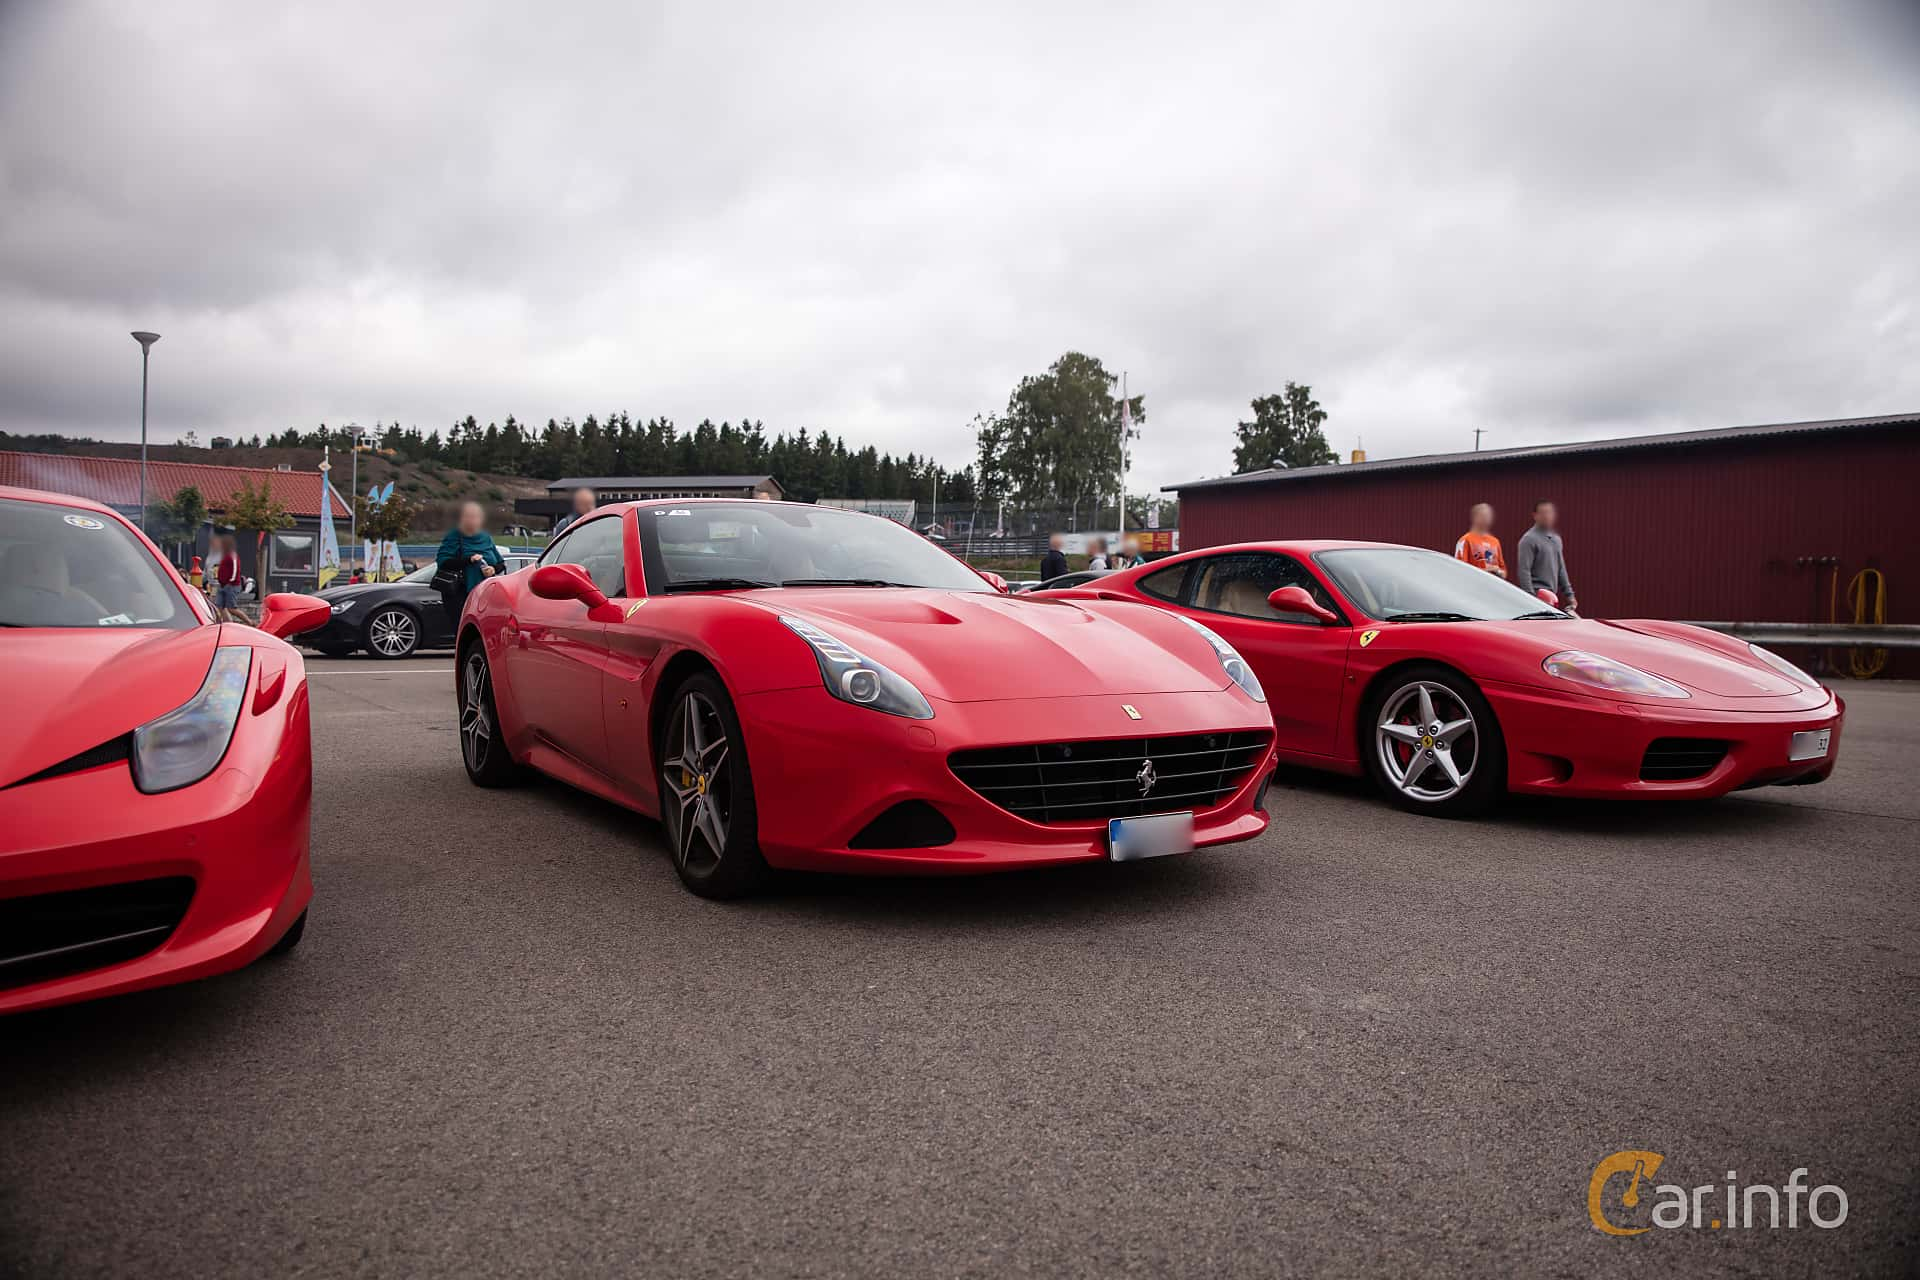 4 Images Of Ferrari California T 3 9 V8 Dct 560hp 2015 By Mbe